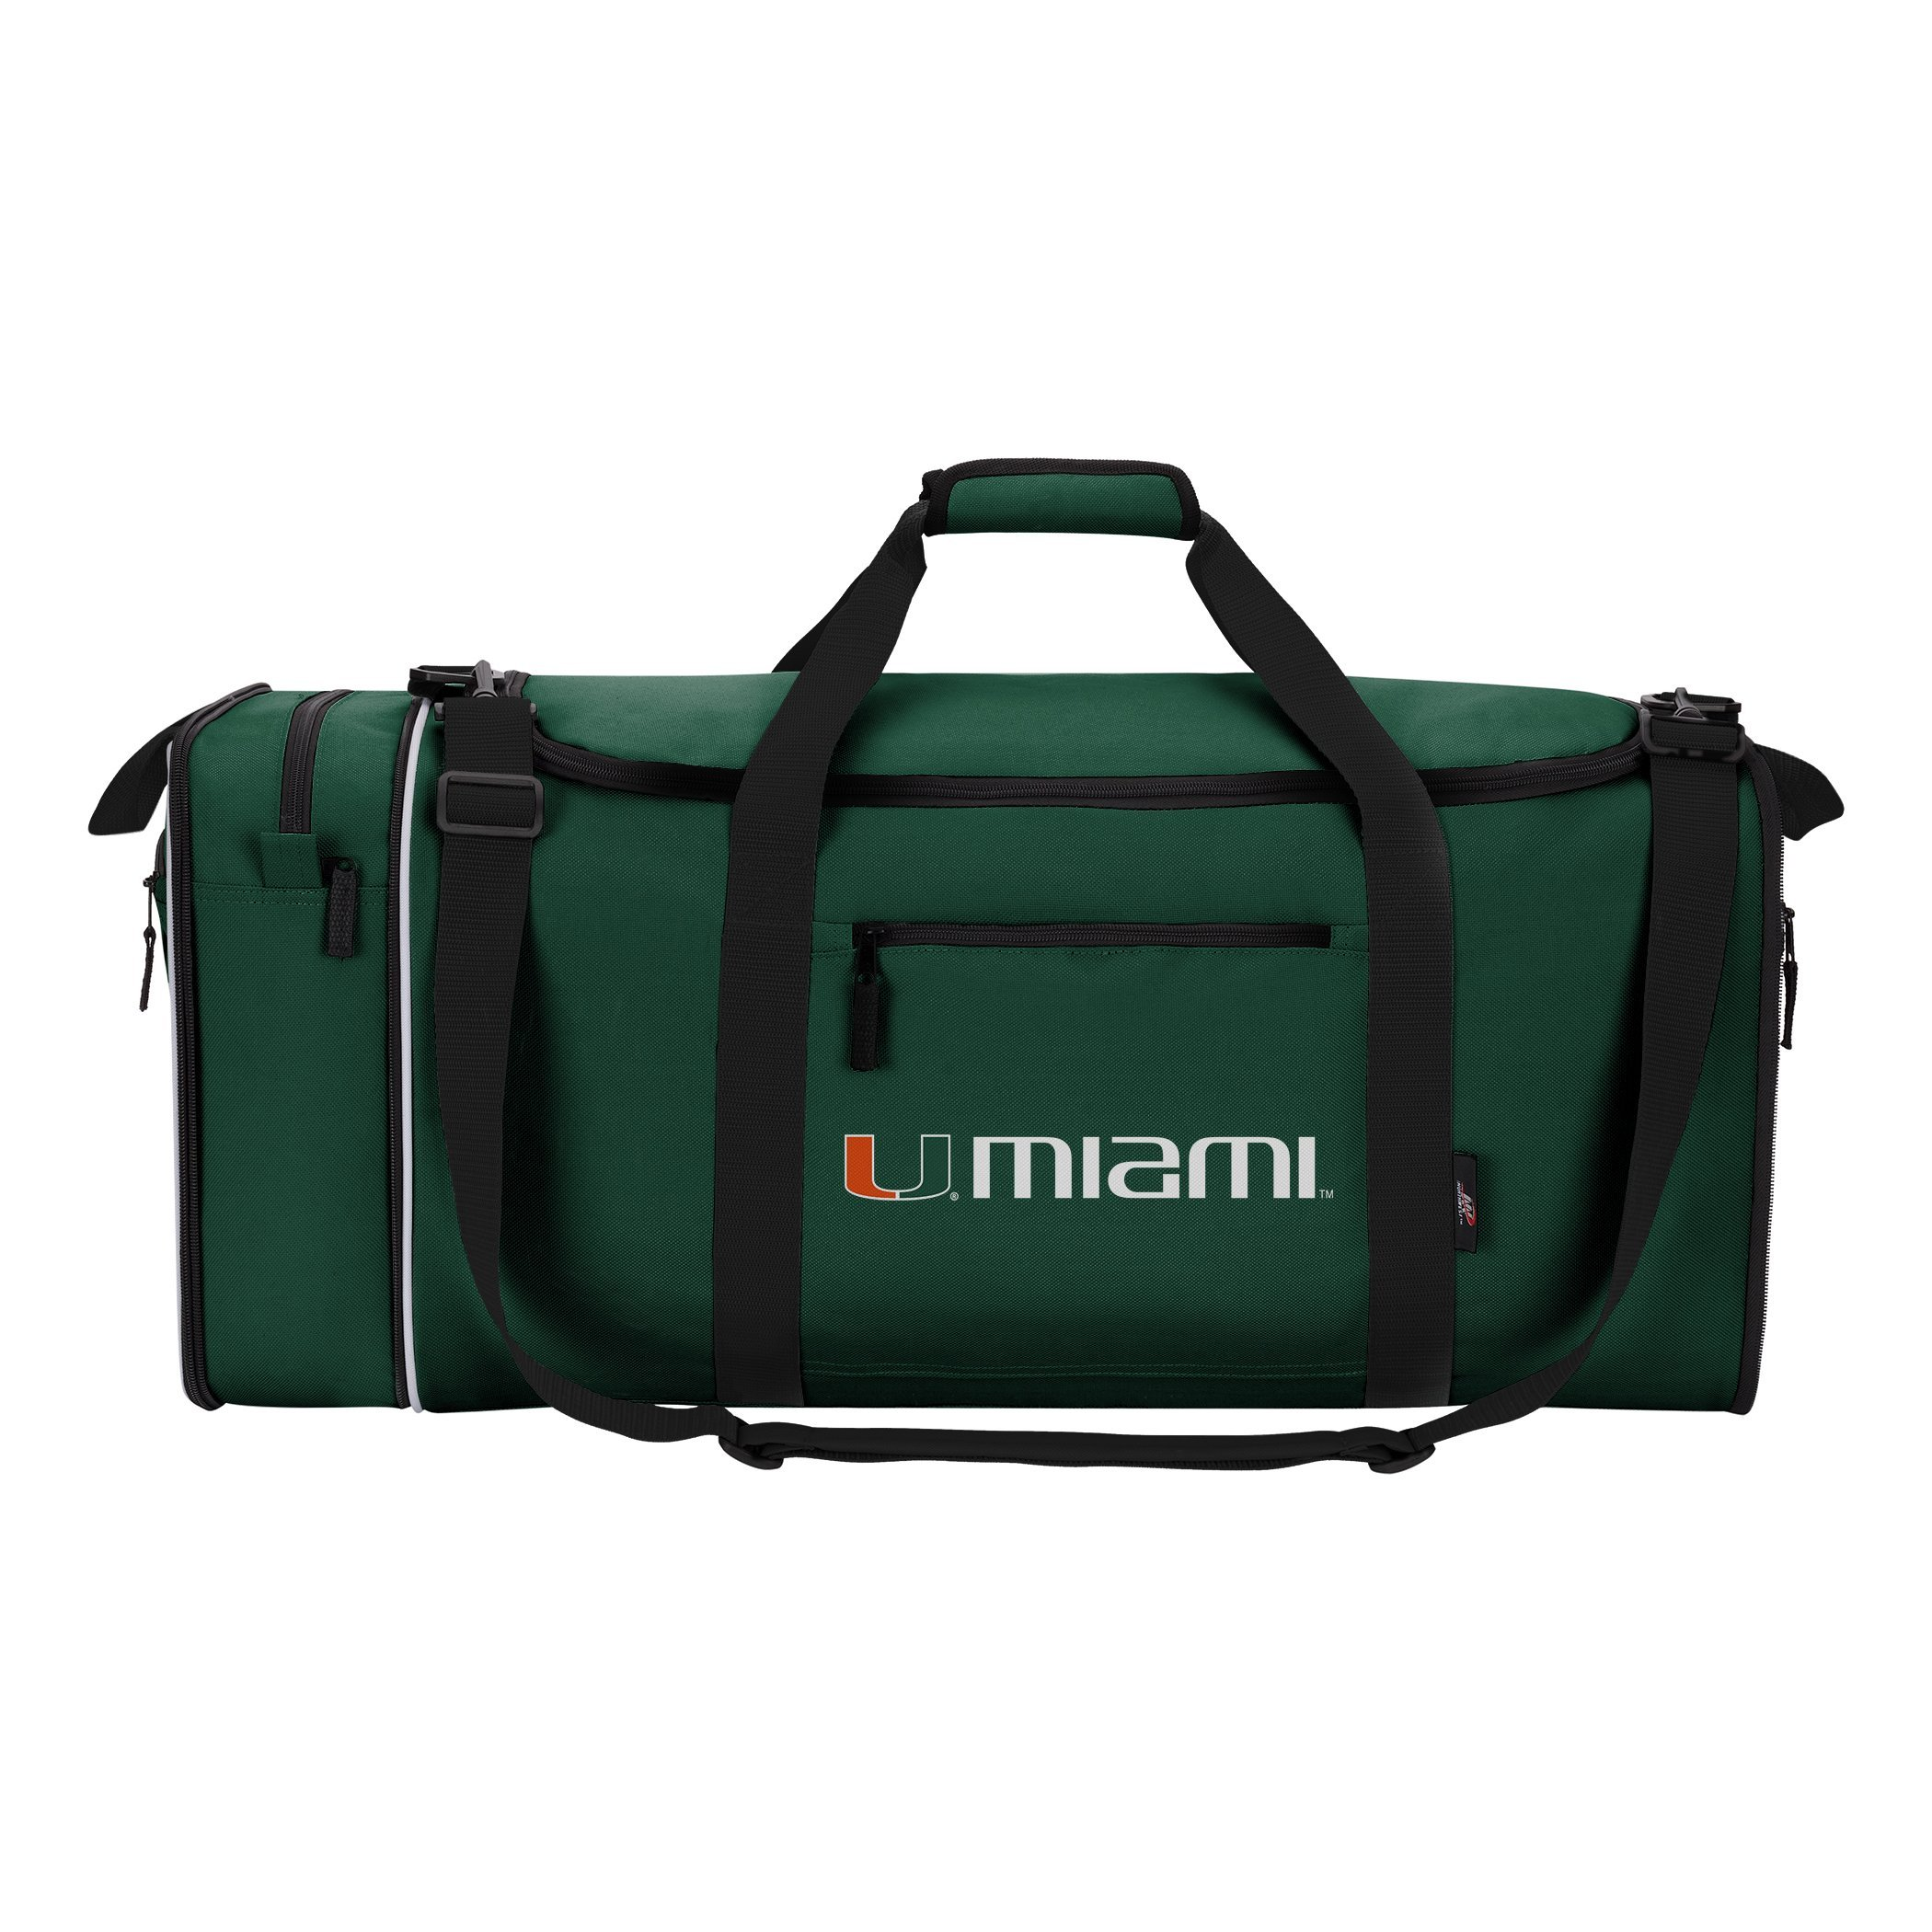 Officially Licensed NCAA Miami Hurricanes Steal Duffel Bag by The Northwest Company (Image #1)